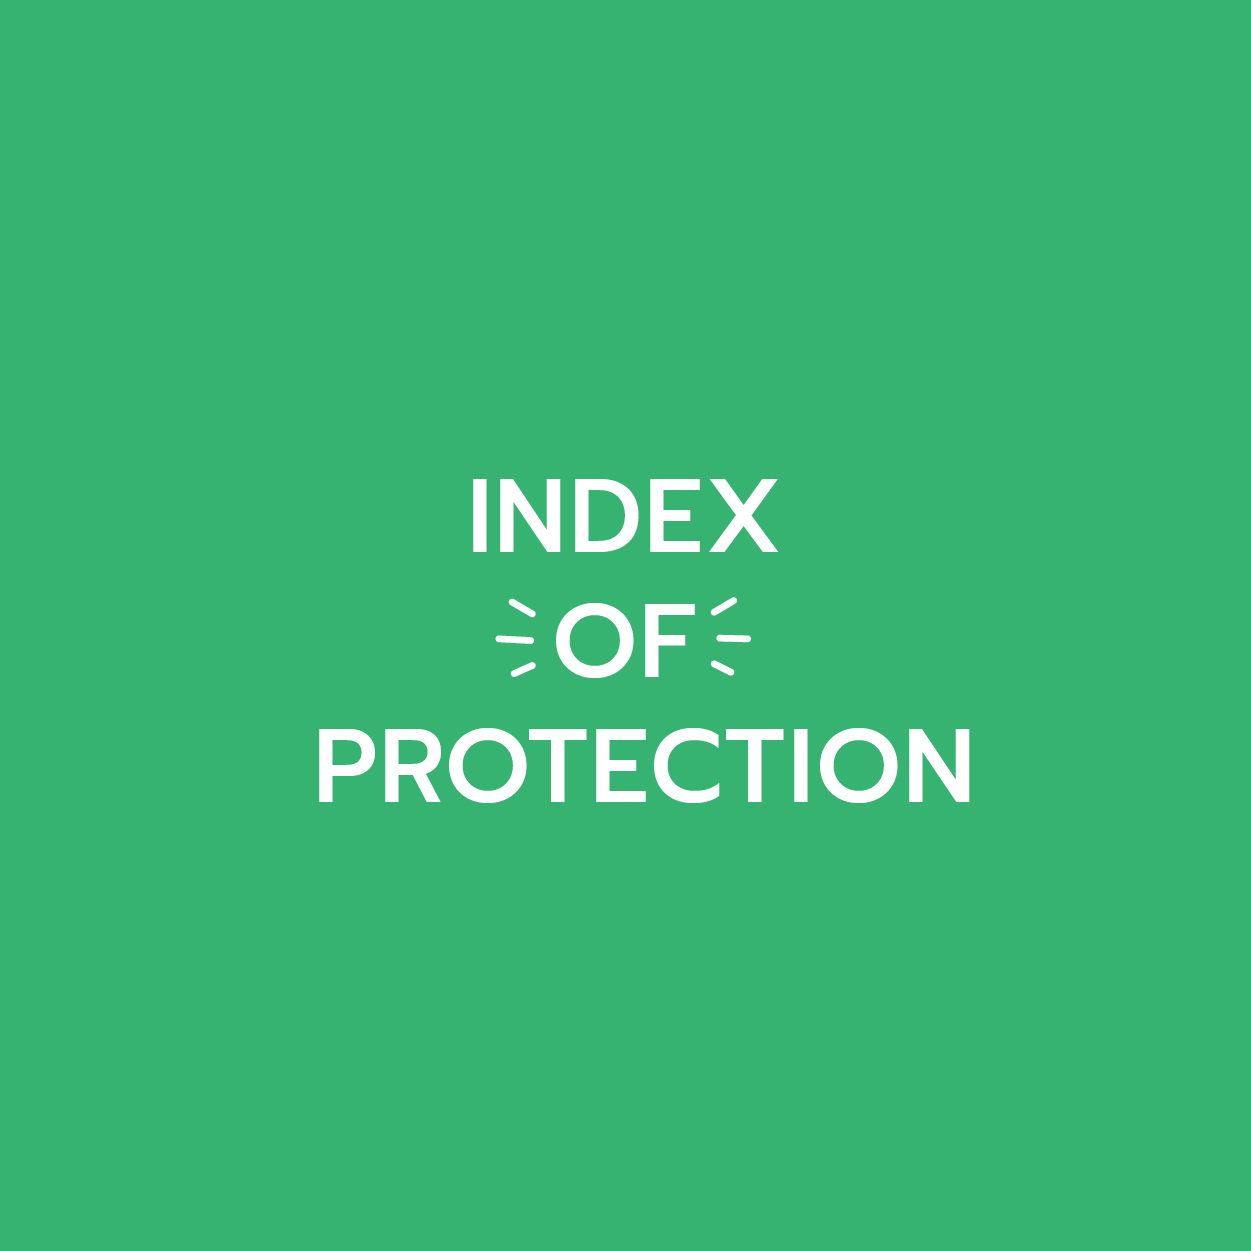 Index of Protection (IP)